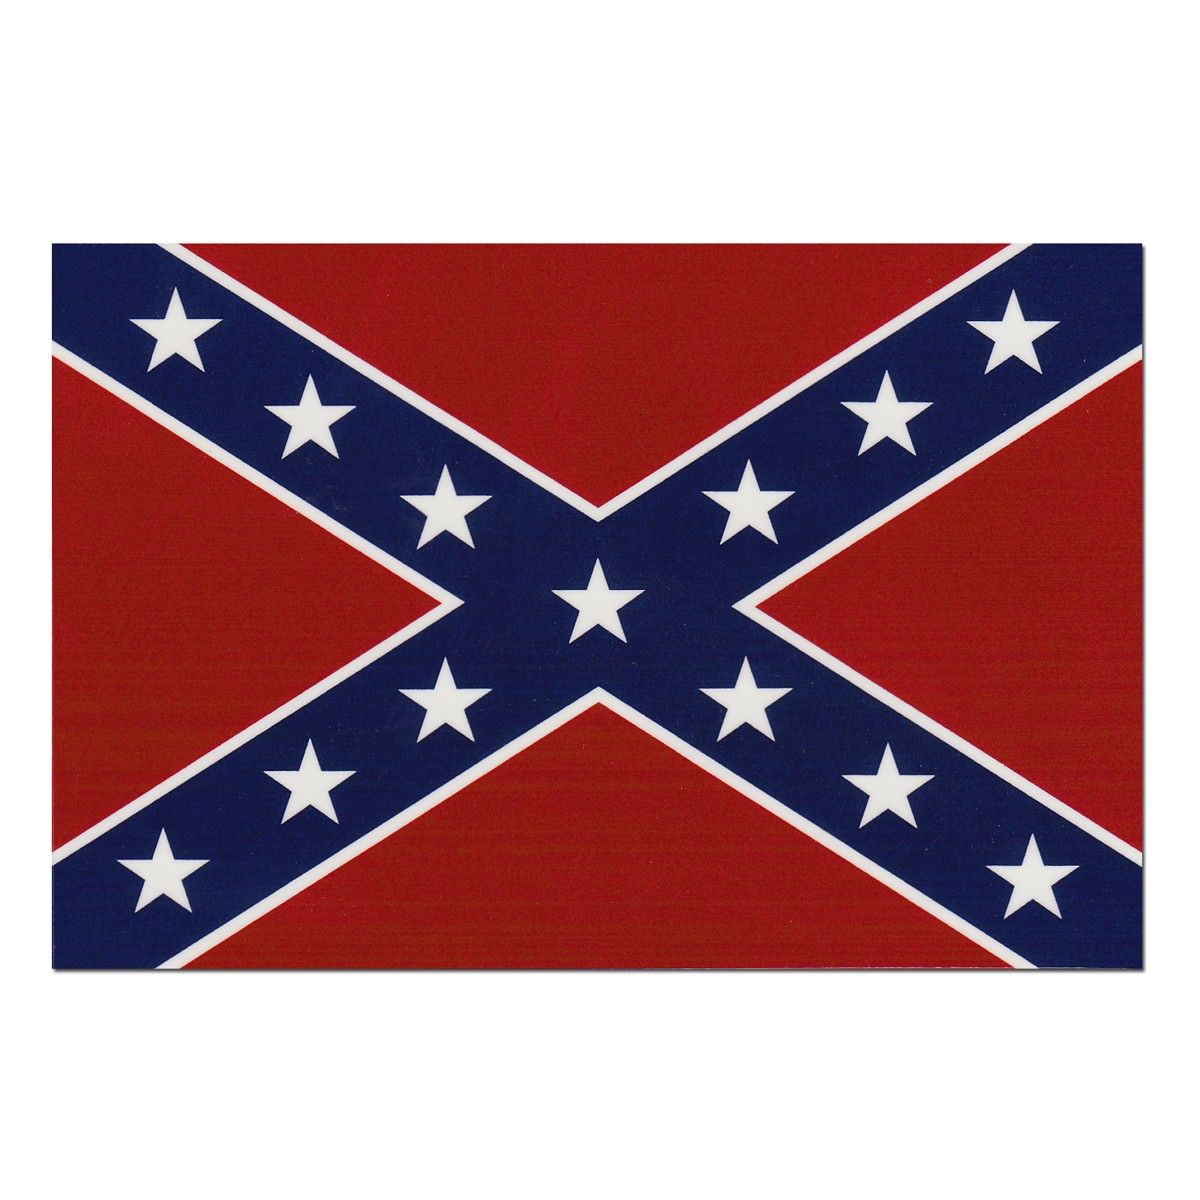 Confederate Flag Decal - ClipArt Best - ClipArt Best | Craft Ideas ...